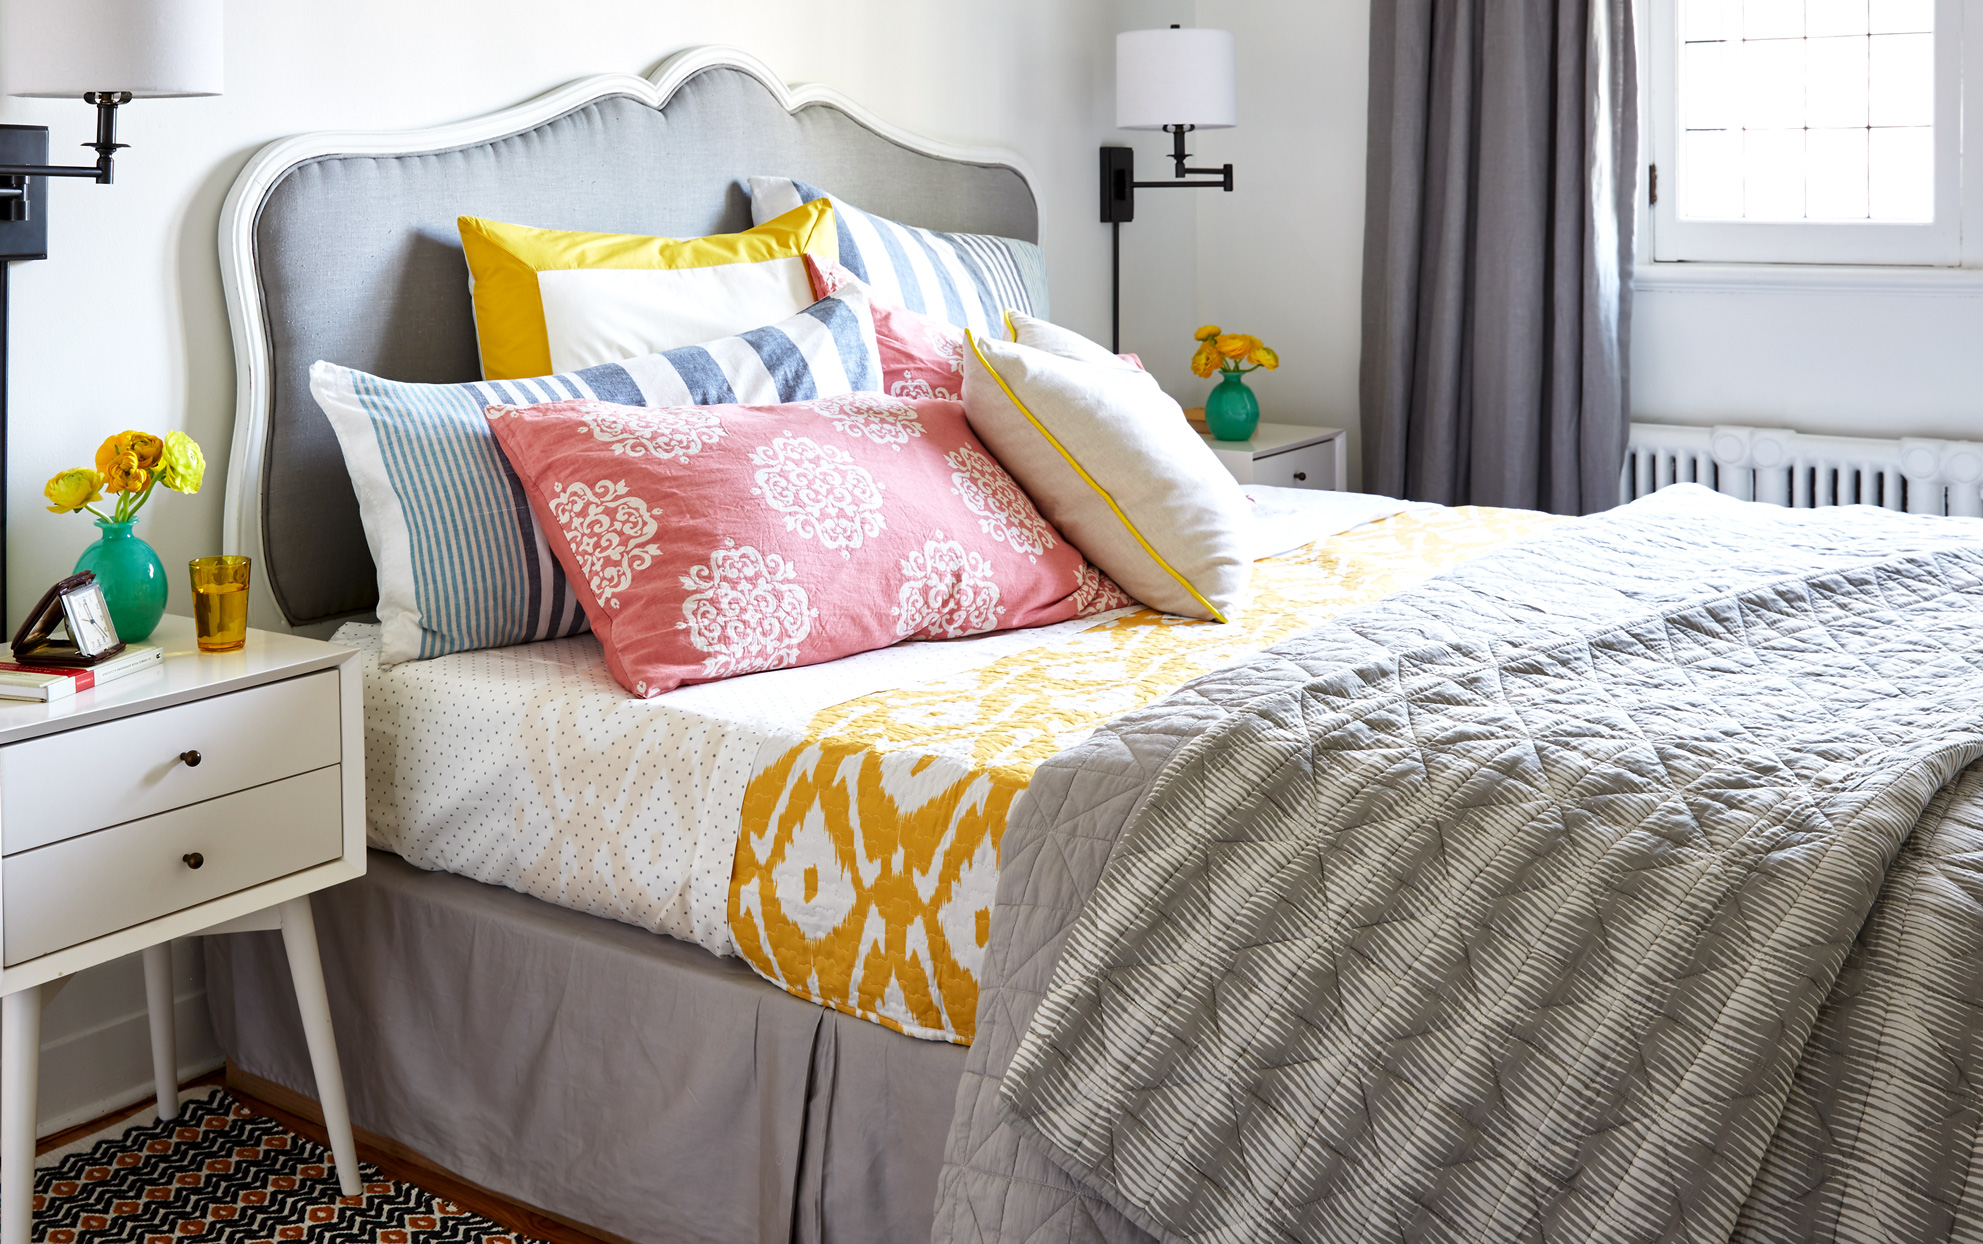 Bed with colorful patterned bedding